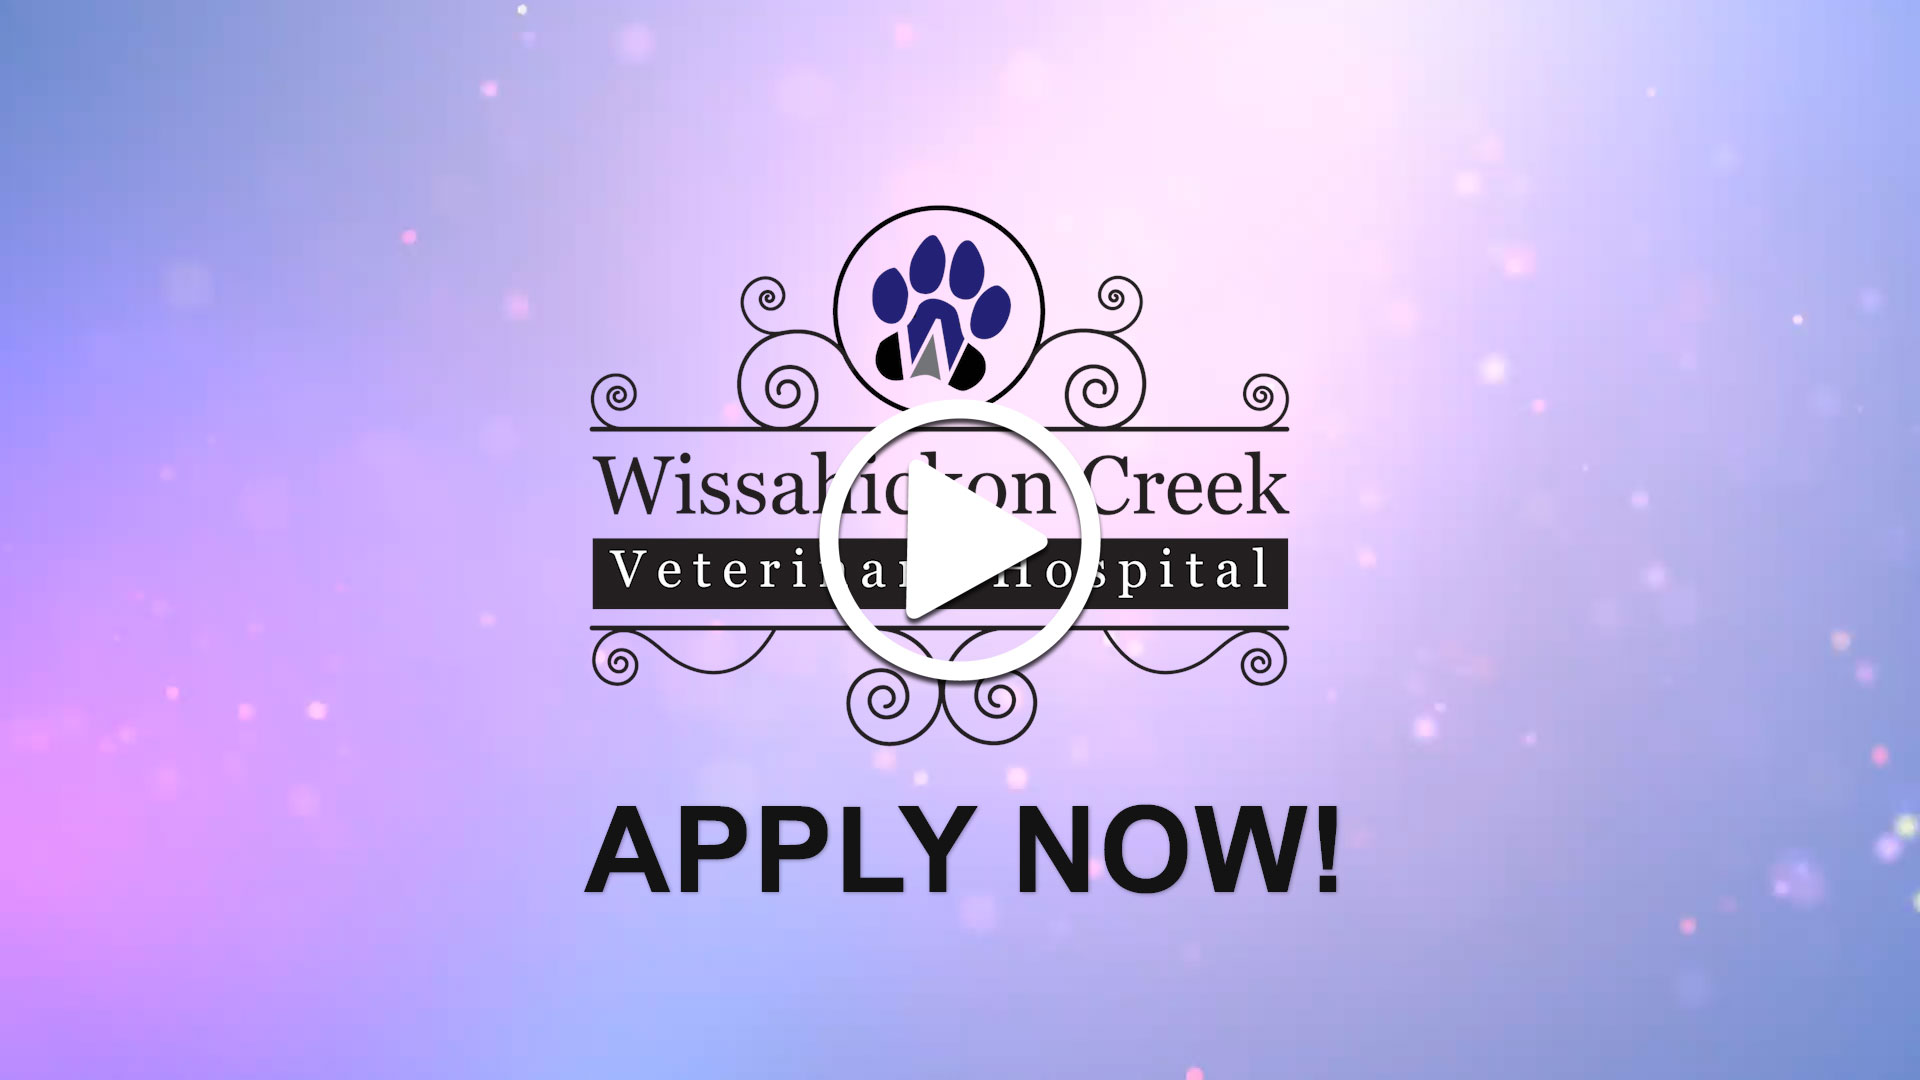 Watch our careers video for available job opening Veterinarian - Full-Time or Part-Time in Warminster, PA, USA